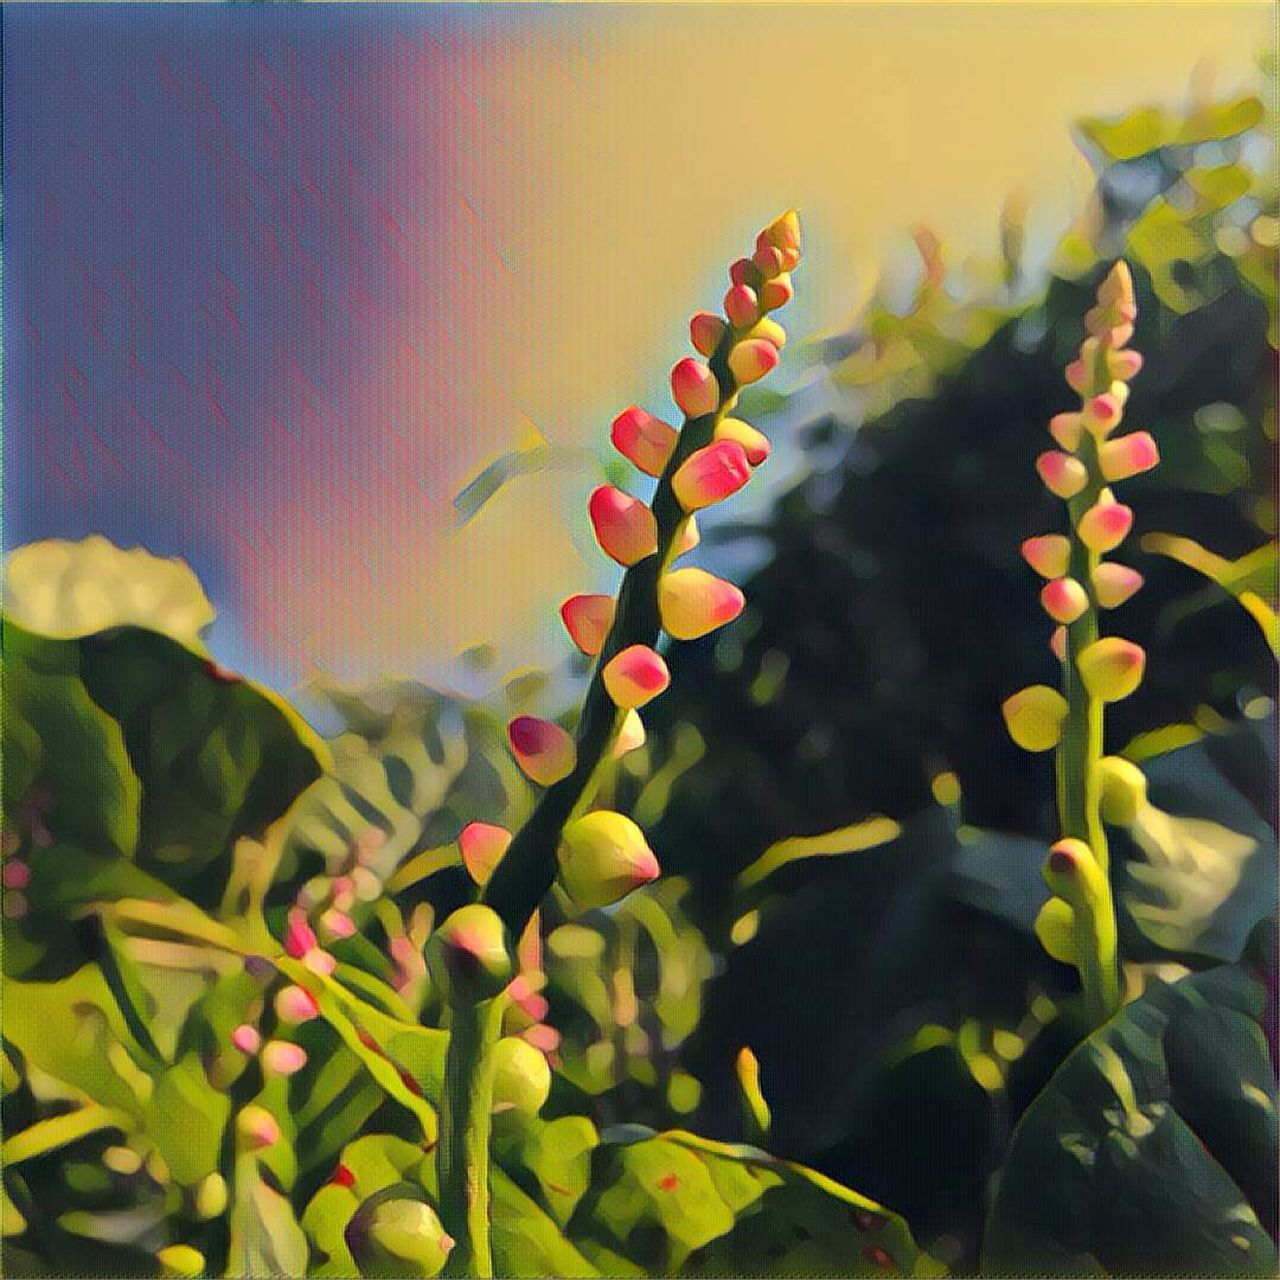 growth, plant, nature, no people, beauty in nature, outdoors, day, close-up, flower, fragility, freshness, sky